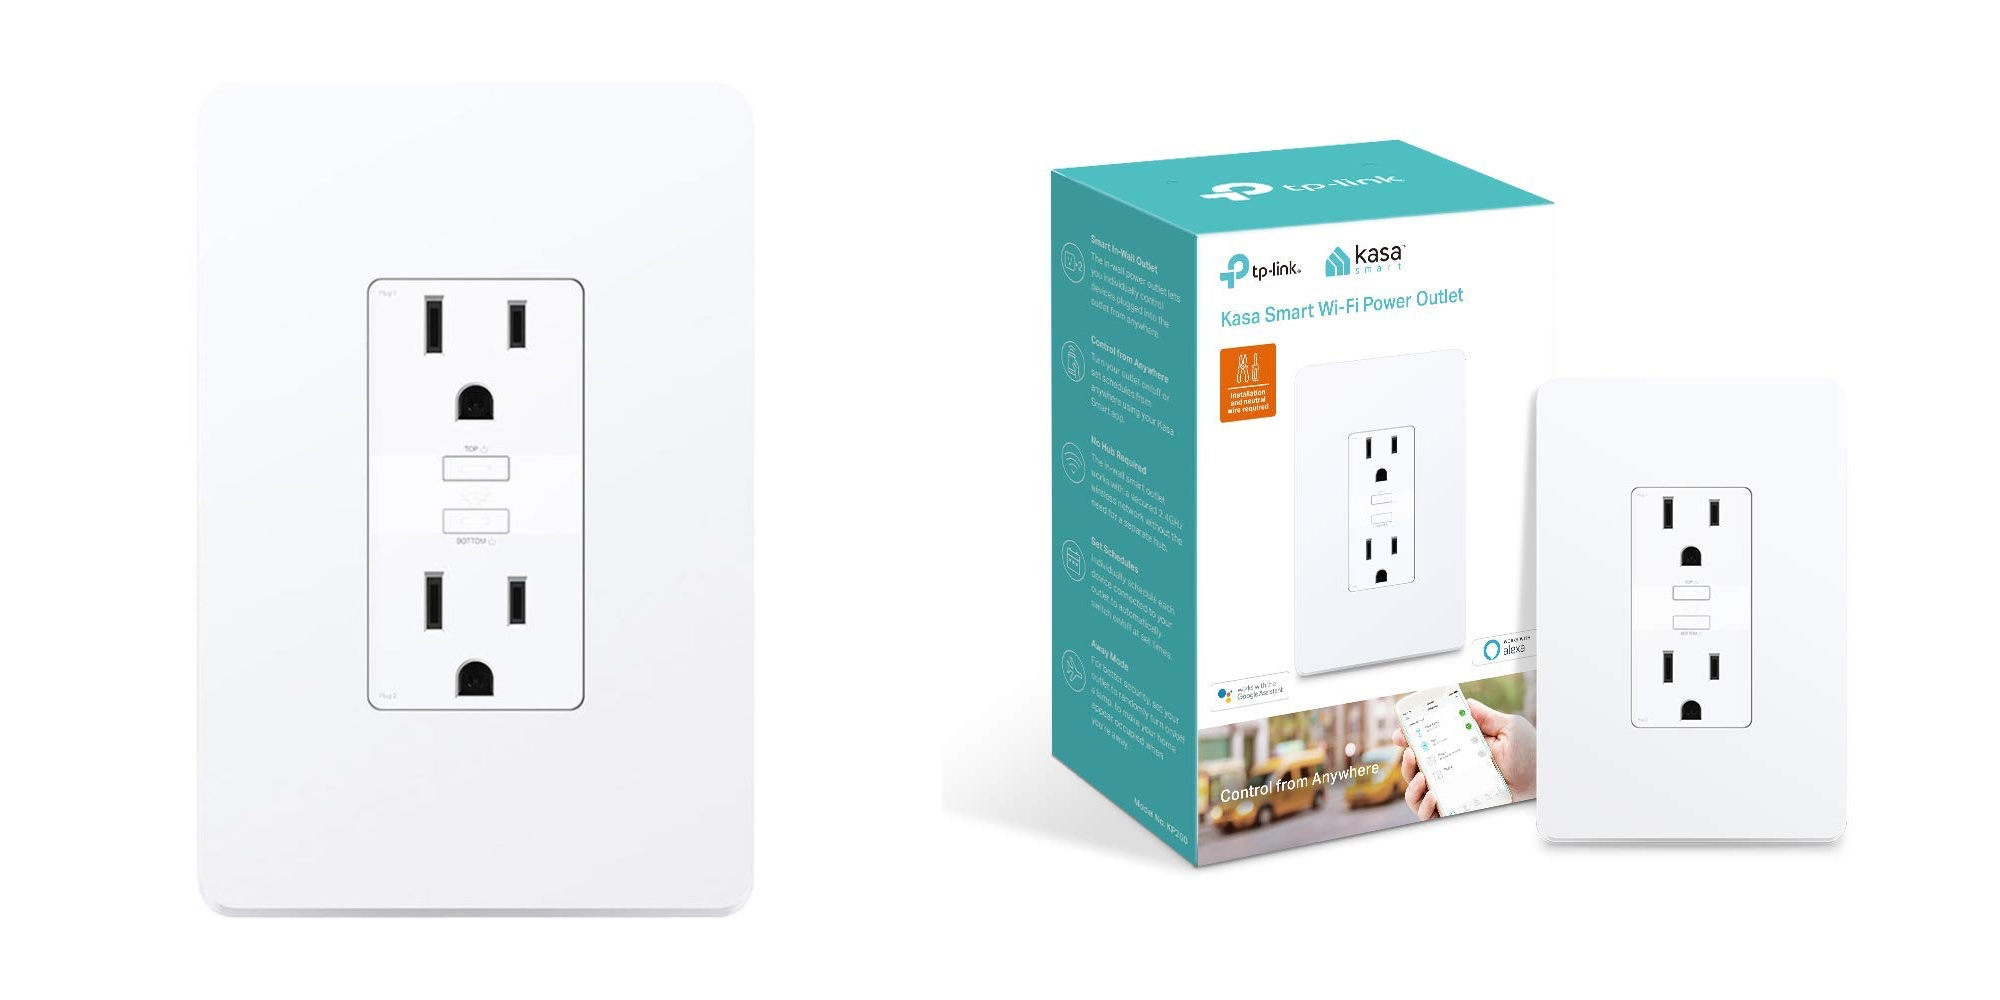 Save on TP-Link's new in-wall Dual Outlet Smart Plug: Get one for $30 or two for $55 (Reg. $40 each)